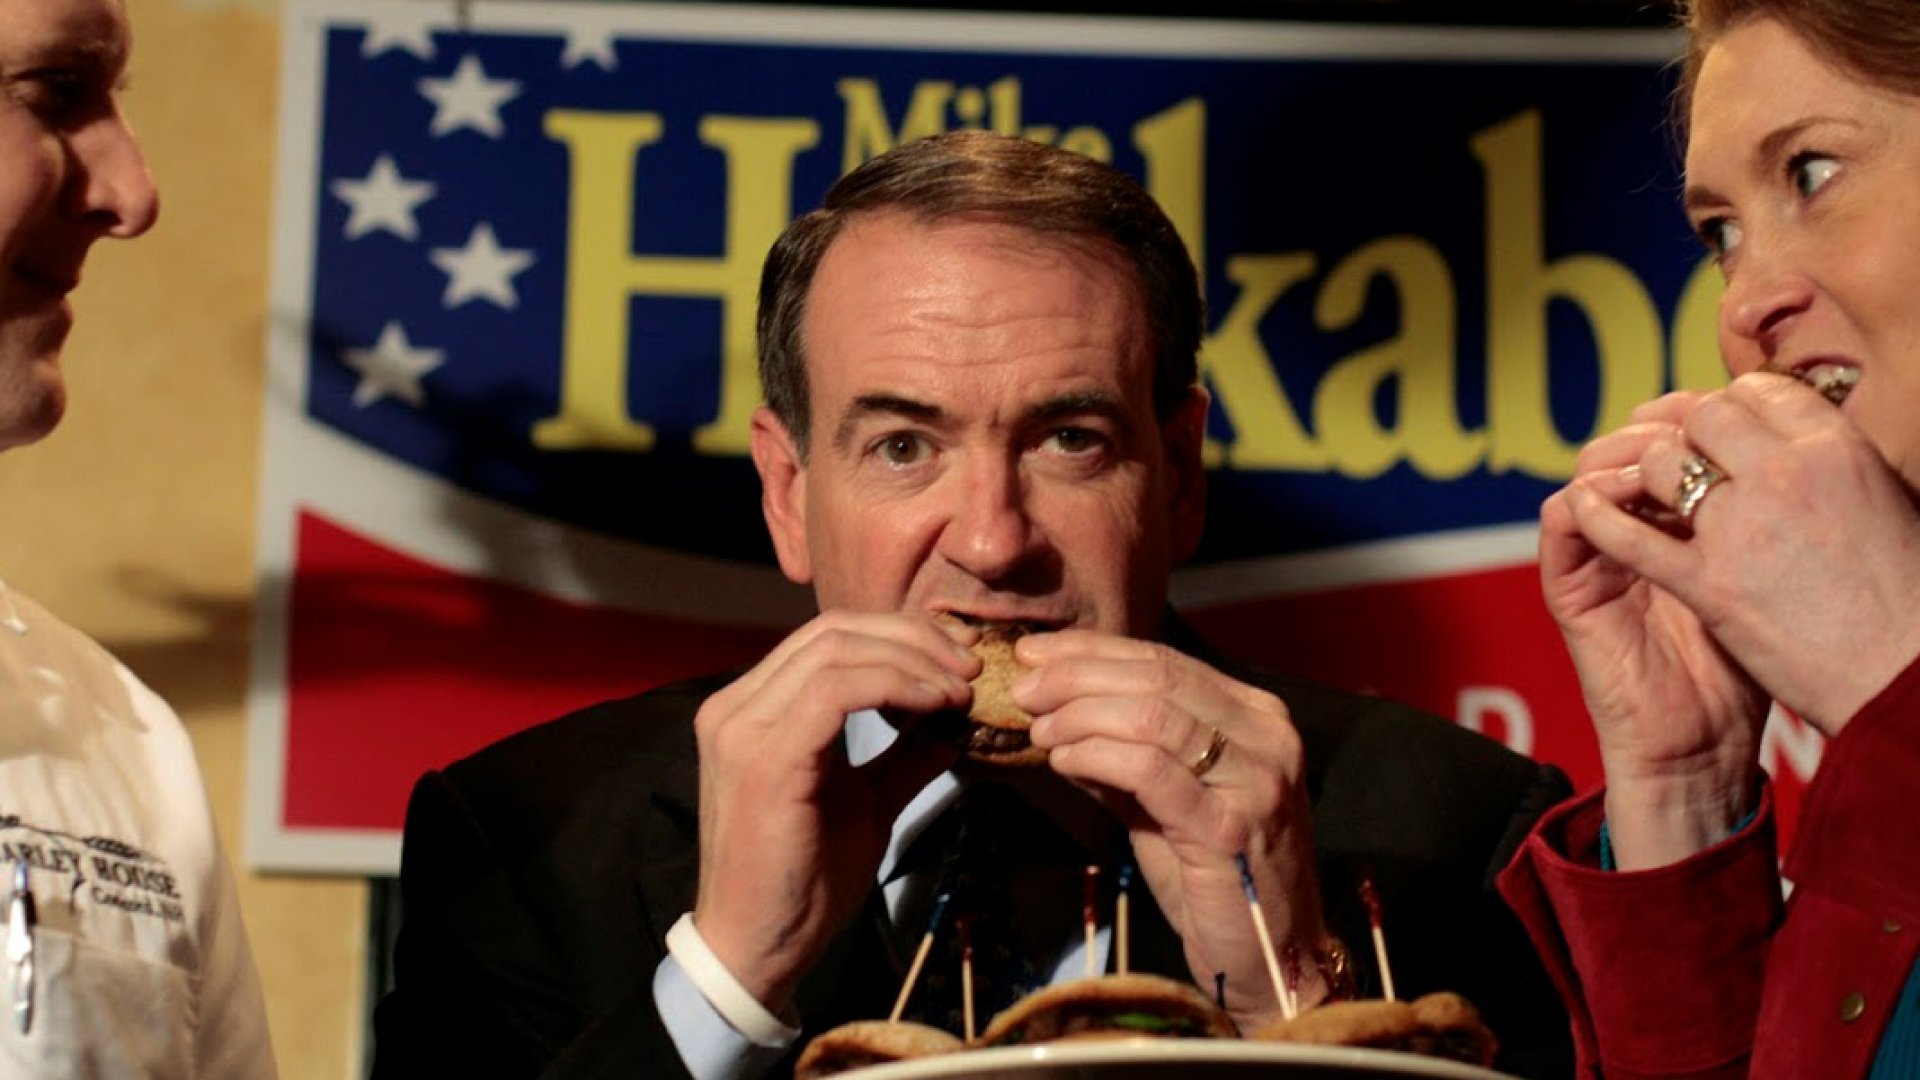 Former Arkansas governor Mike Huckabee eating a burger named after him at The Barley House, in Concord, New Hampshire.